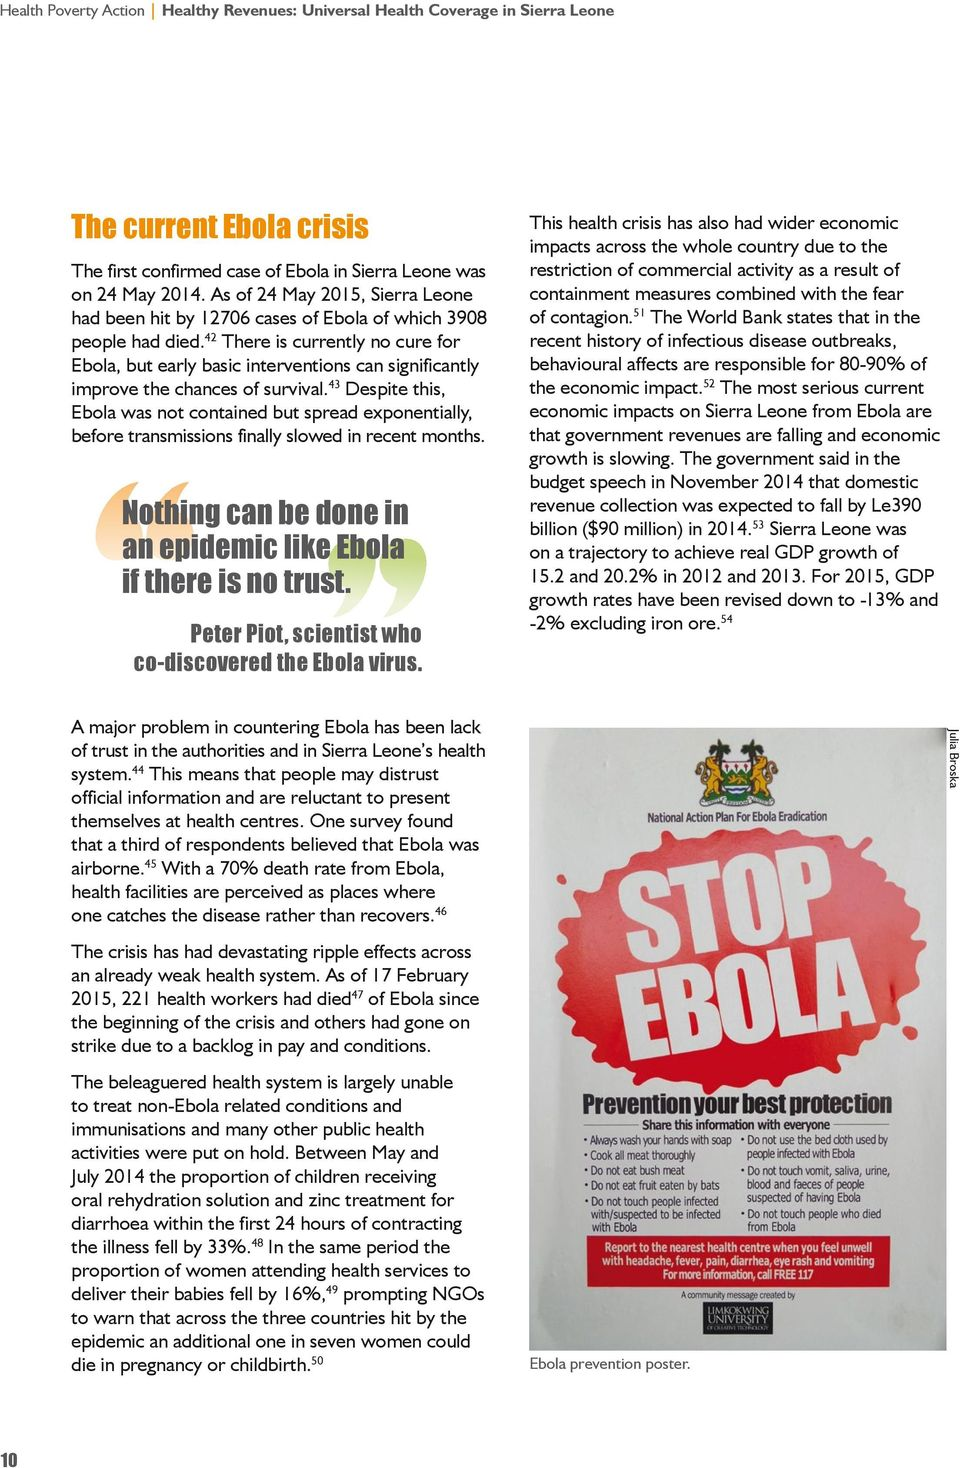 43 Despite this, Ebola was not contained but spread exponentially, before transmissions finally slowed in recent months. Nothing can be done in an epidemic like Ebola if there is no trust.